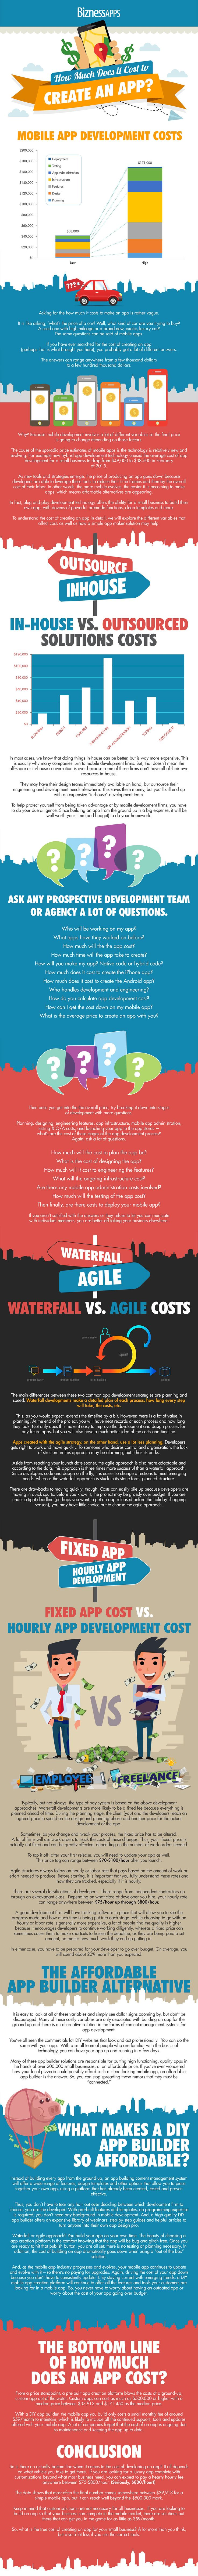 How Much It Cost To Develop An App [infographic]